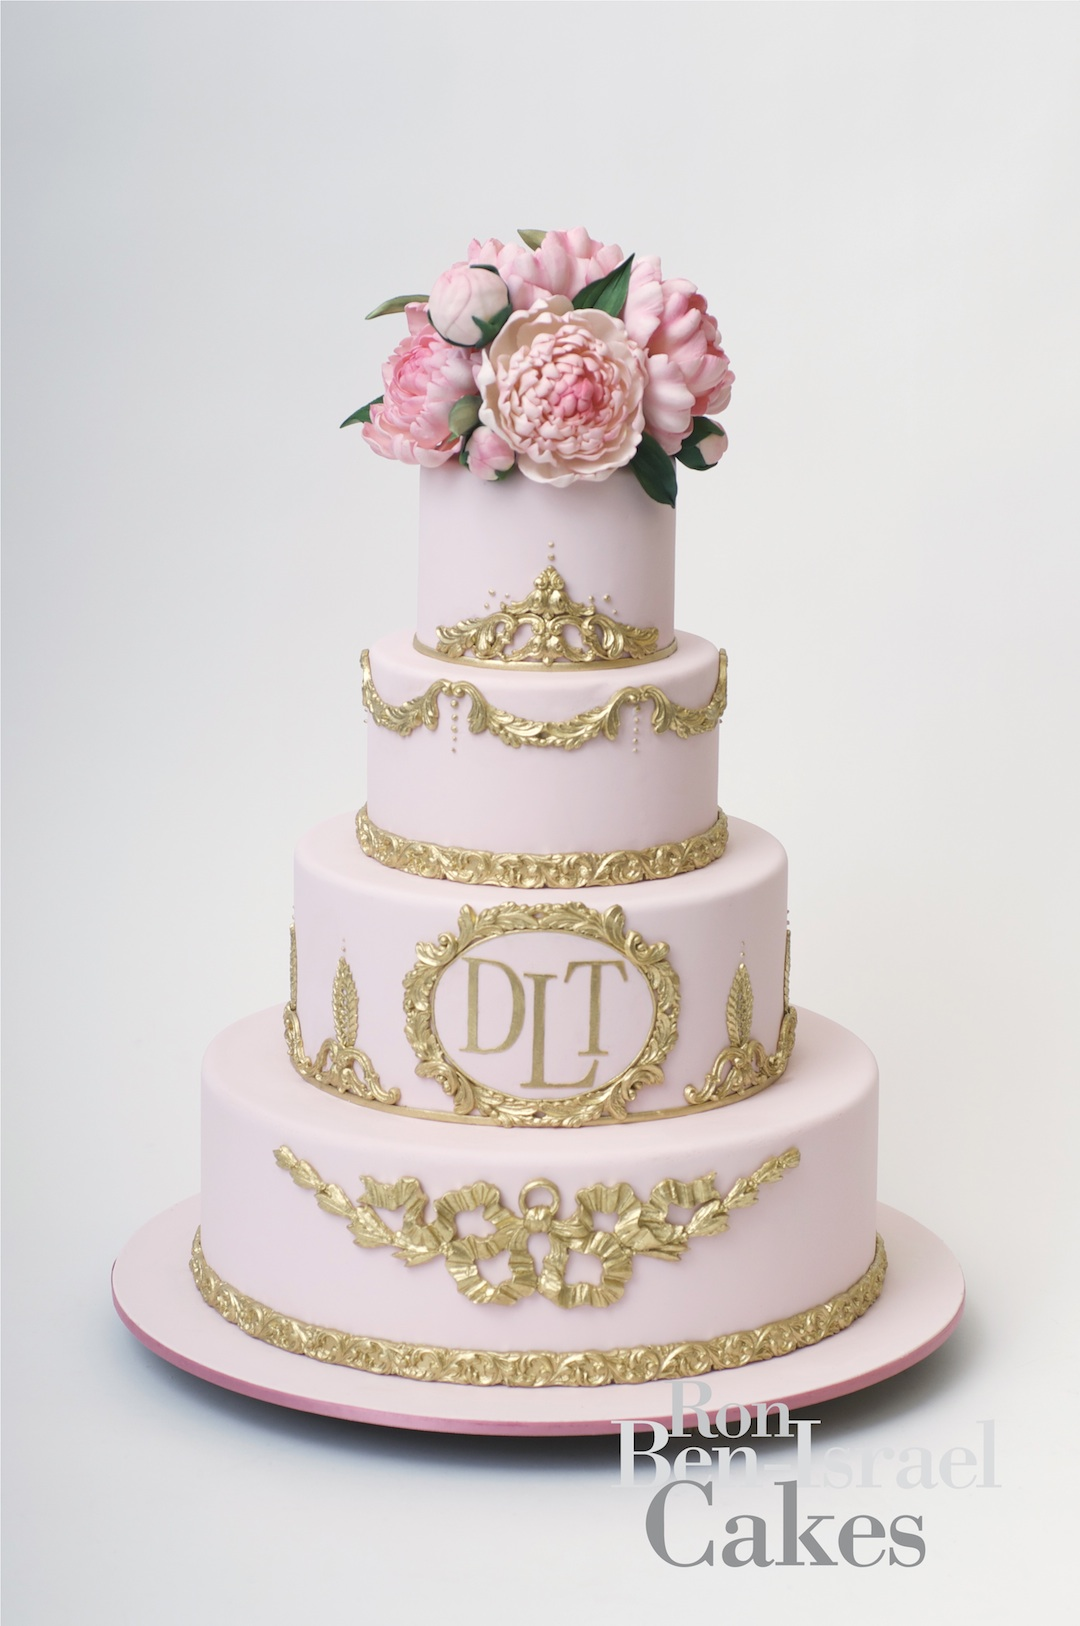 Wedding-cake-inspiration-ron-ben-isreal-wedding-cakes-light-pink-gold.original